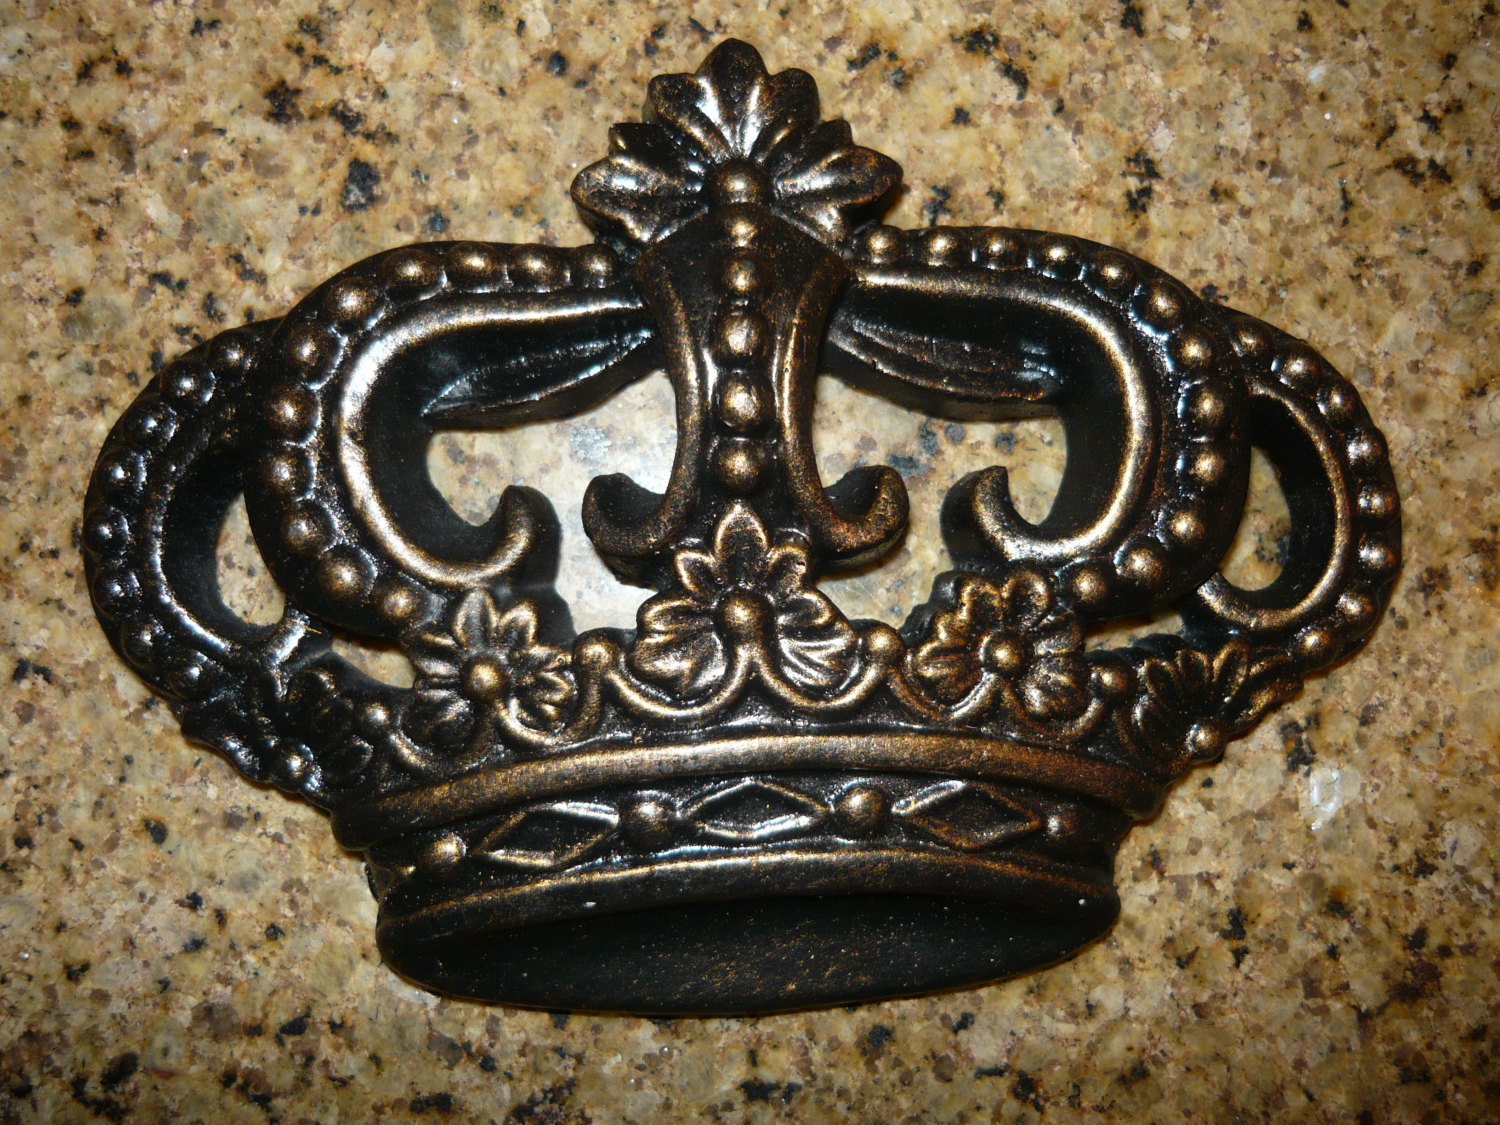 Set of 3 royal crown wall plaques wall decor old world medieval set of 3 royal crown wall plaques wall decor old world medieval tuscan style queen king princess decor hand made and painted amipublicfo Choice Image